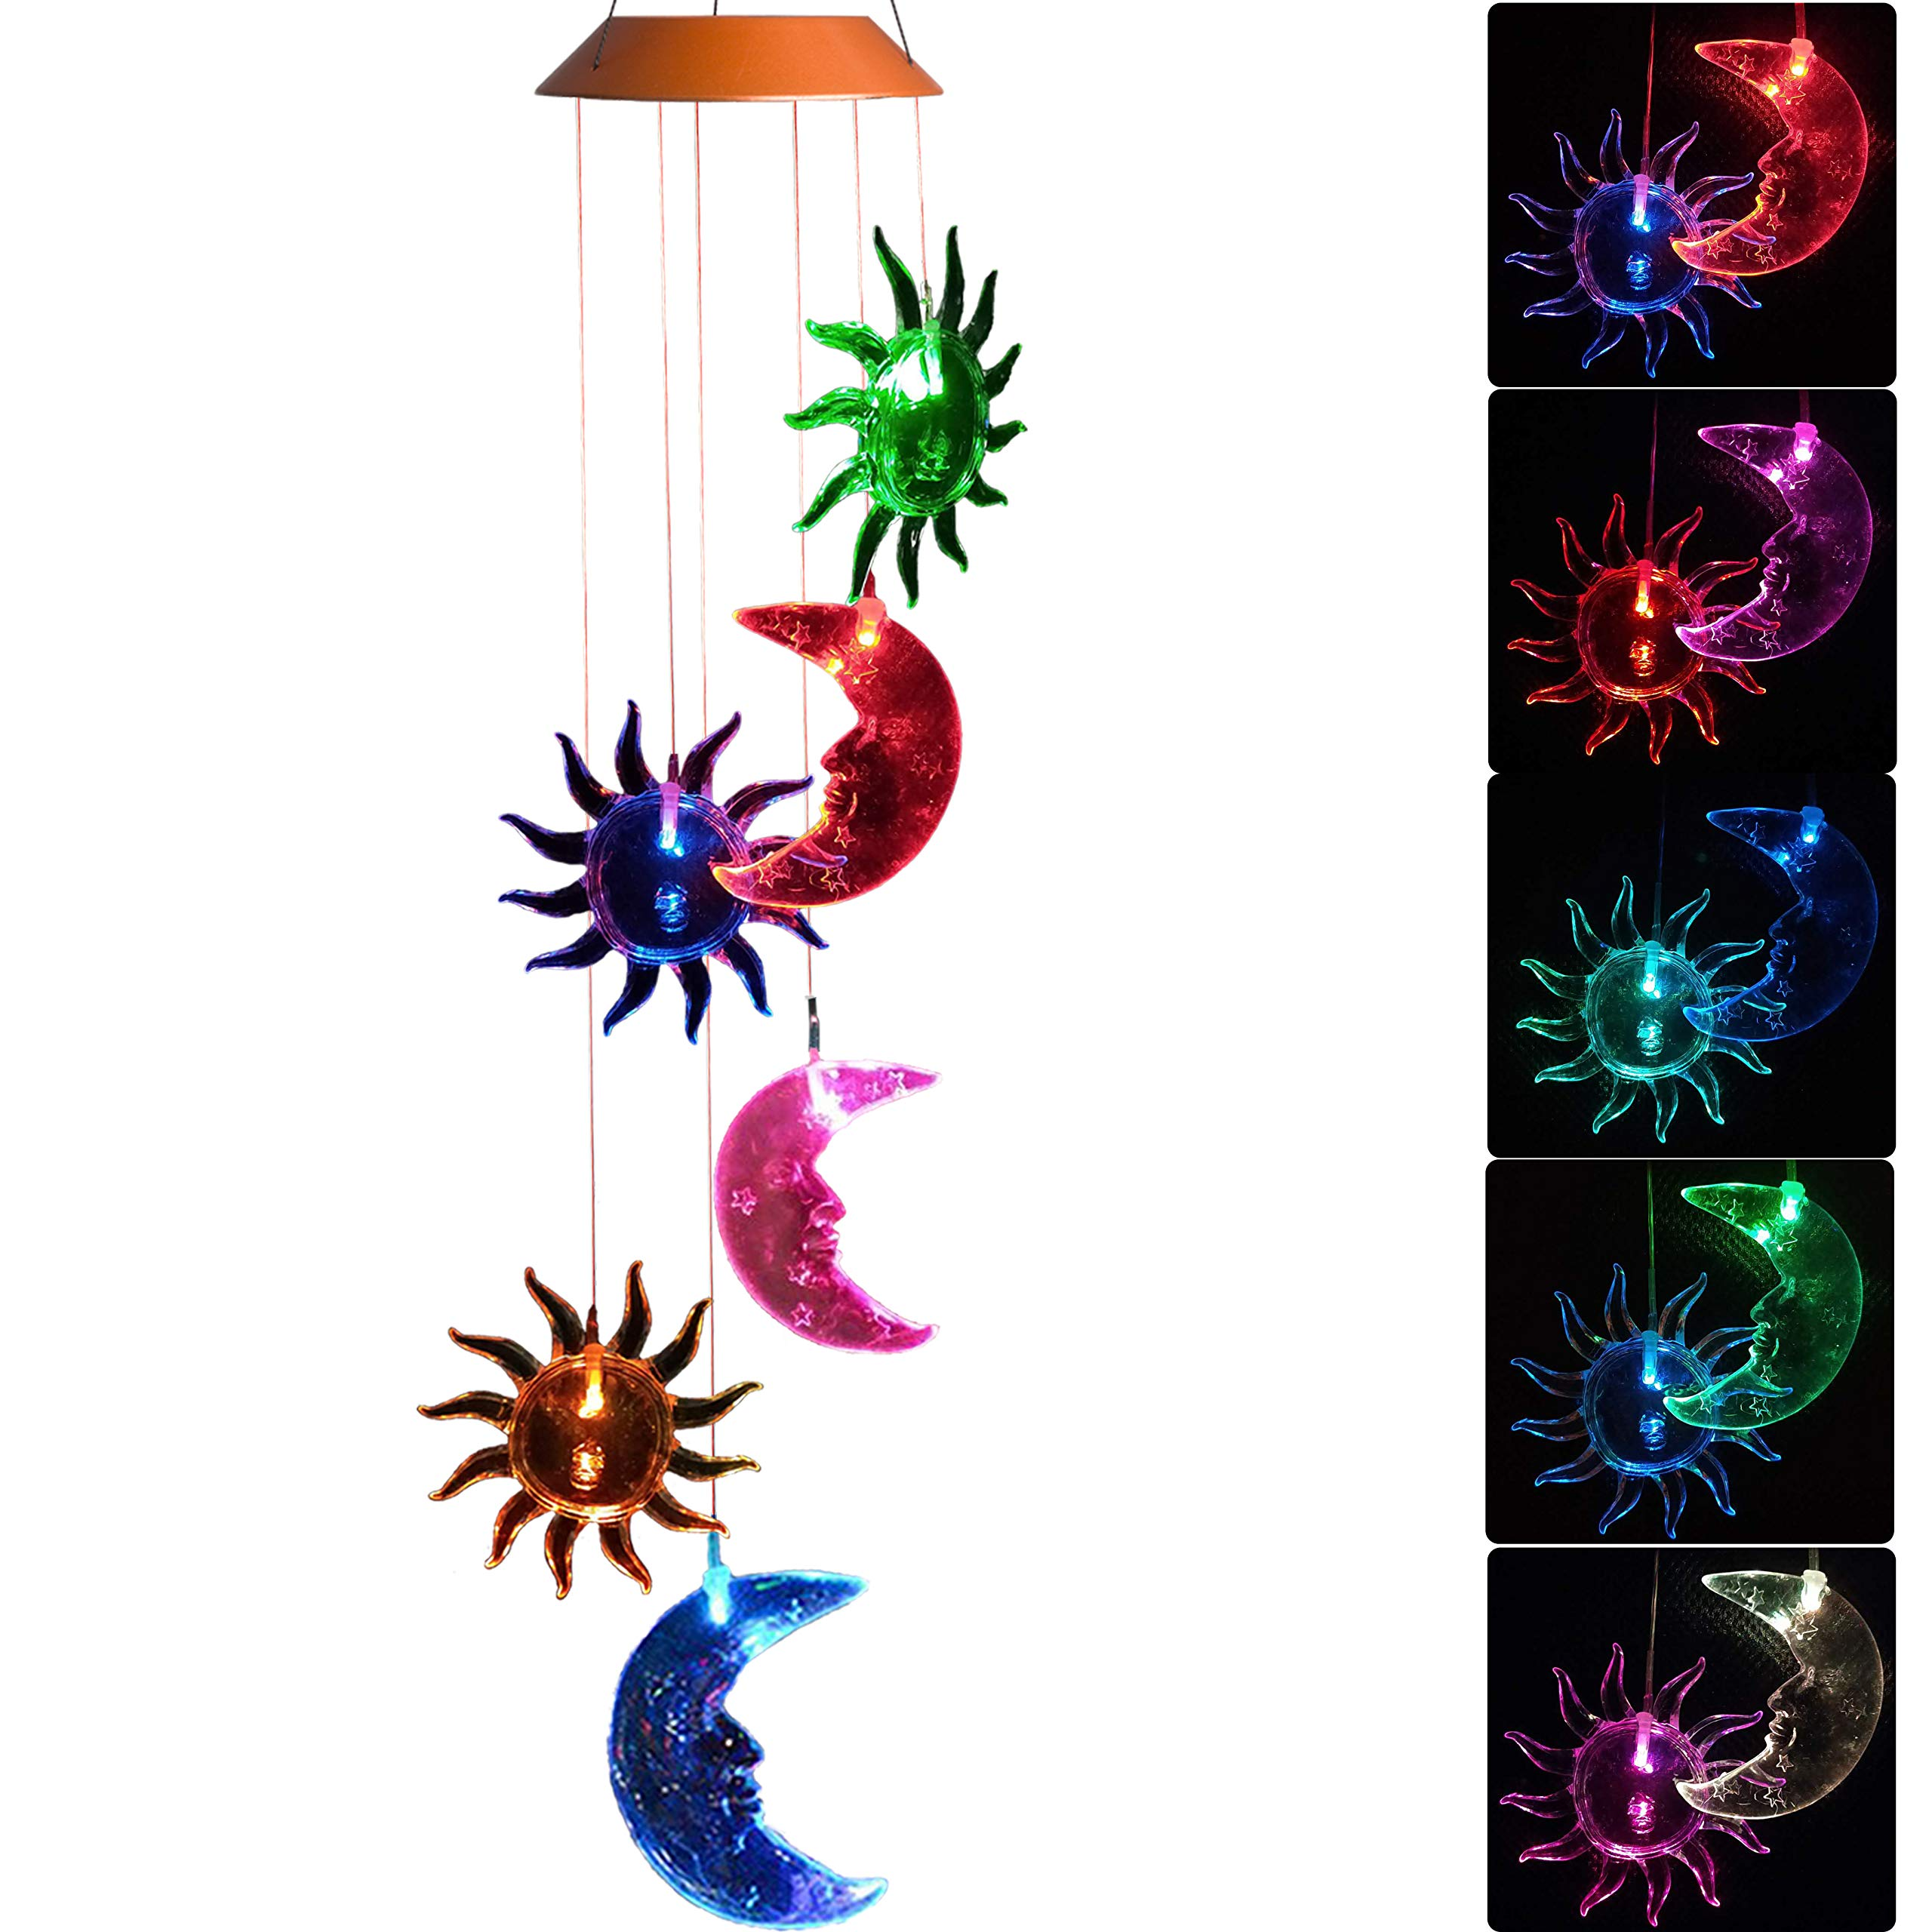 CXFF LED Solar Sun and Moon Wind Chimes Outdoor - Waterproof LED Changing Light Color Wind Chime, Six Suns and Moons Wind Chimes for Home, Party, Night Garden Decoration